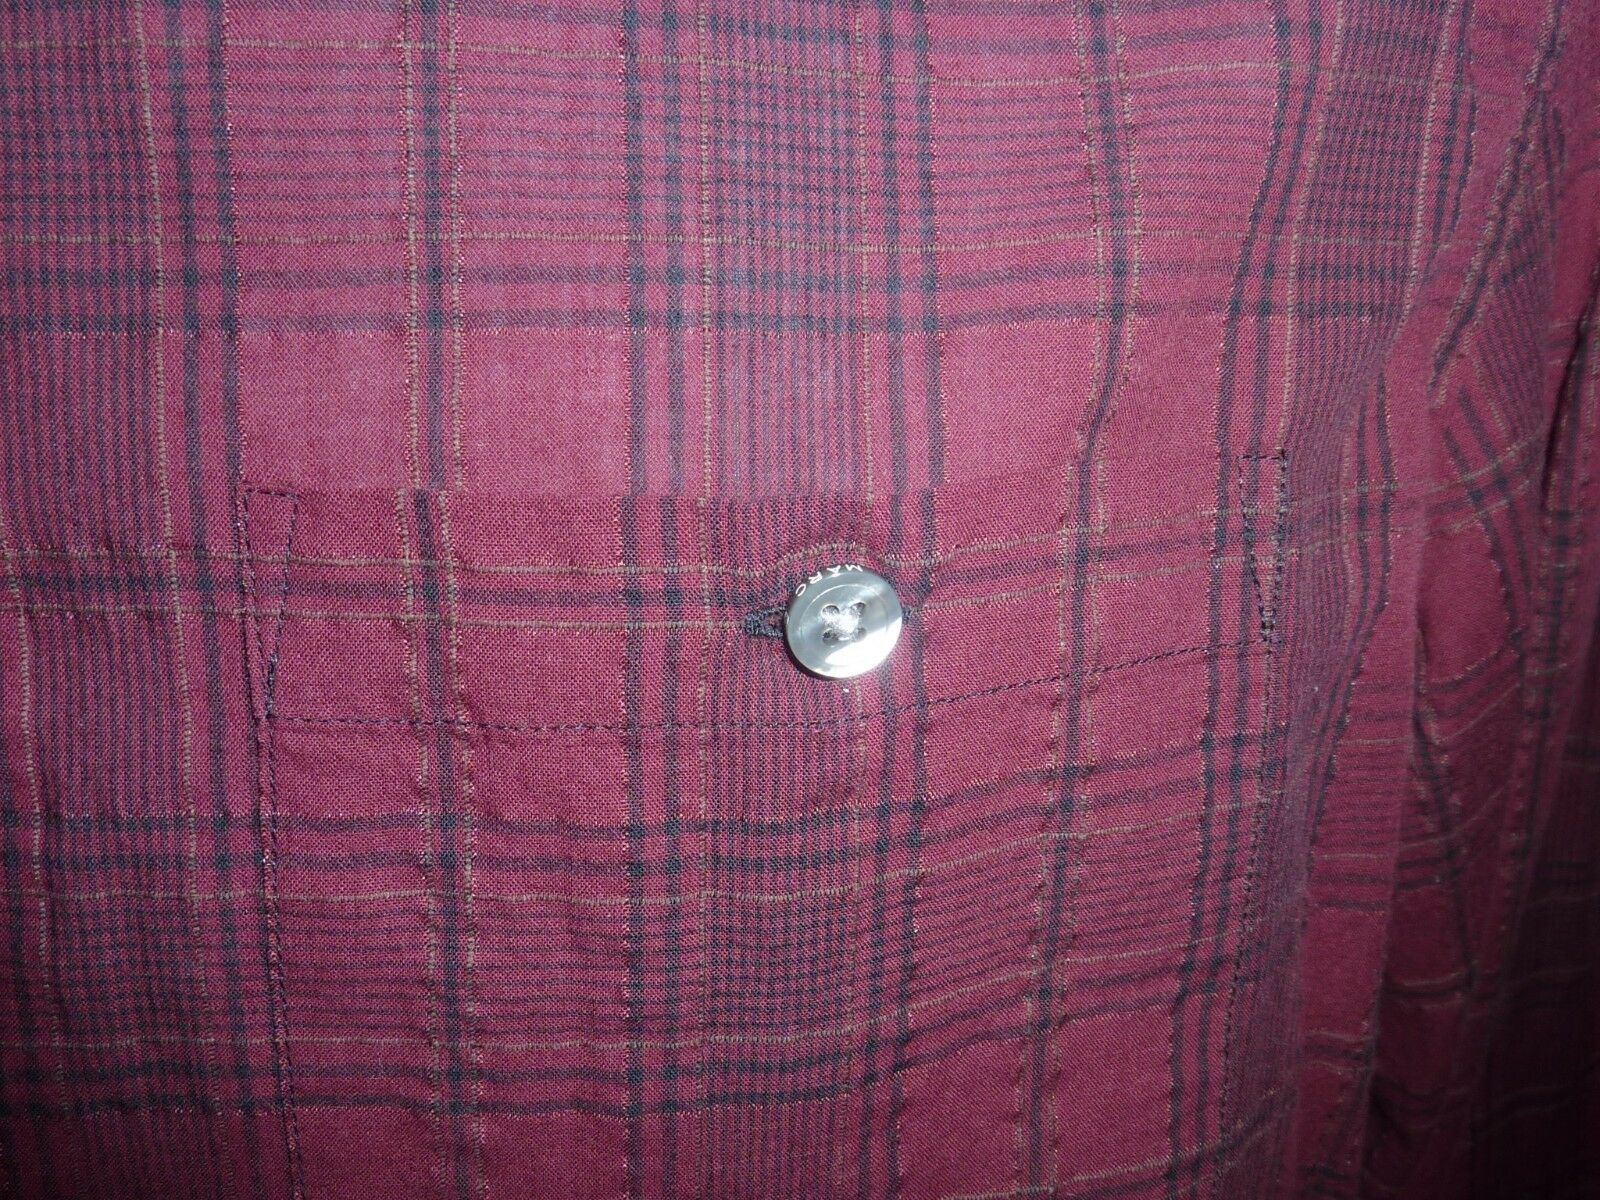 MARC by Man MARC JACOBS Man by MADDER CARMINE Casual Shirt NEW Size Medium Retail  198 a22d47